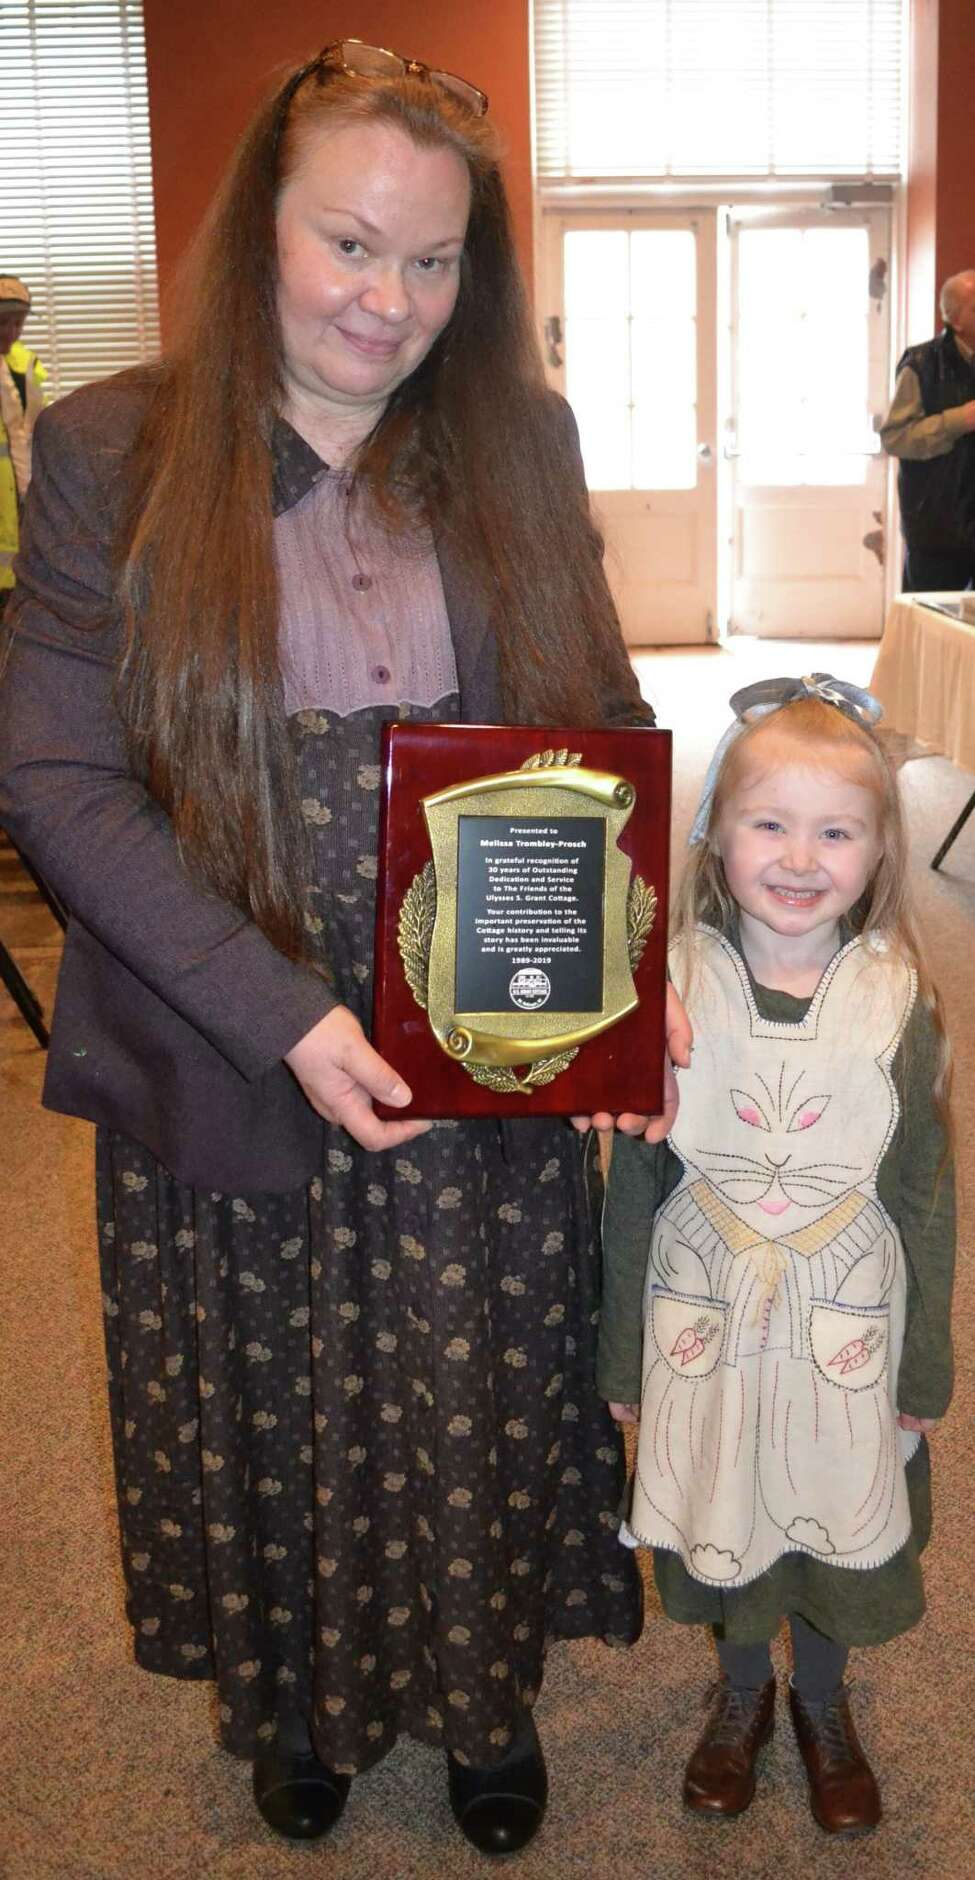 Melissa Trombley-Prosch, founding member of the Friends of Grant Cottage, is seen with her grandaughter, Delilah Robinson, as she was recognized for her long service to the nonprofit group. (Photo provided)